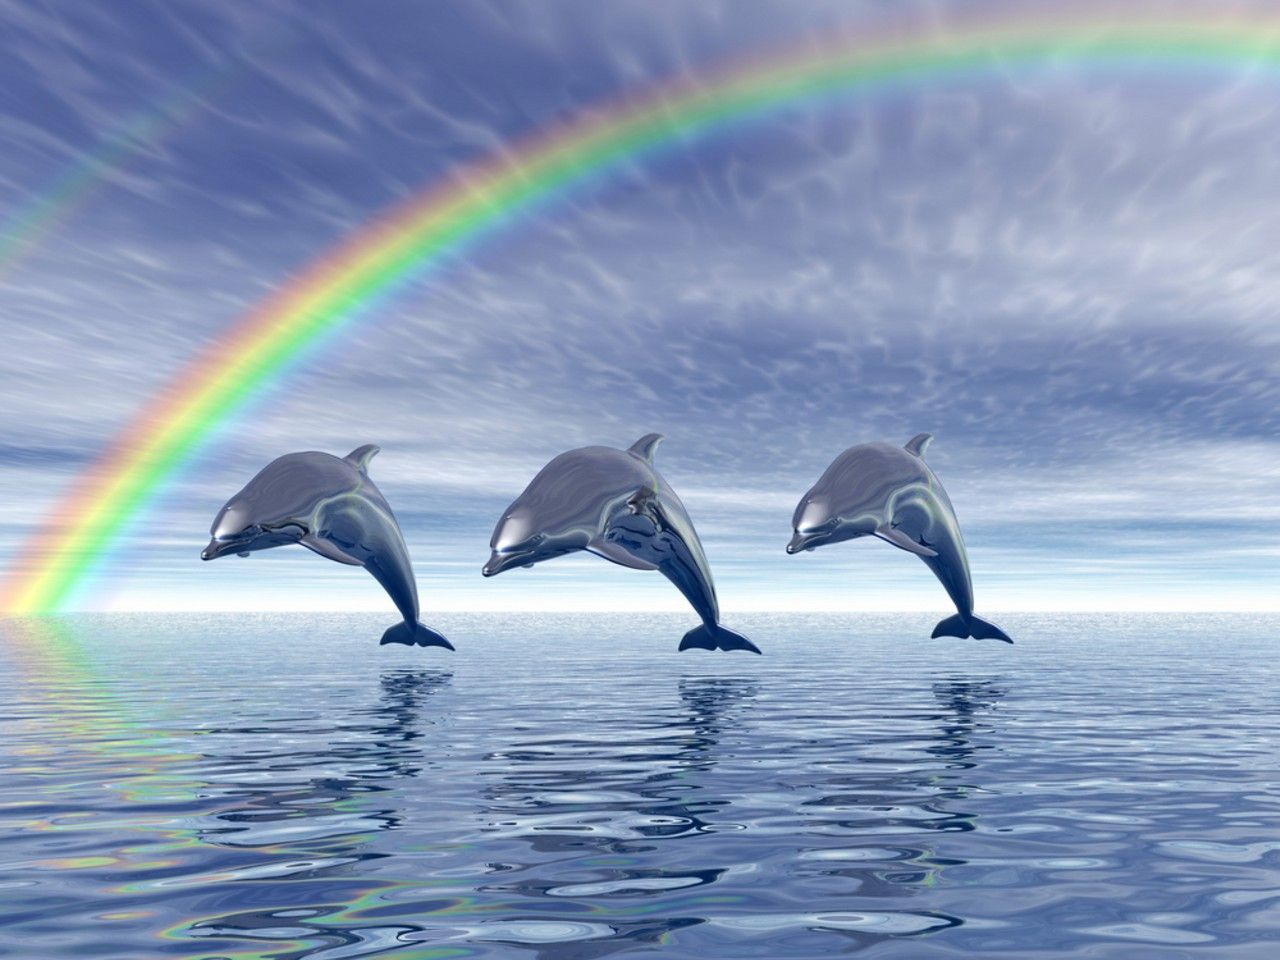 Dolphins Wallpaper Android Apps On Google Play